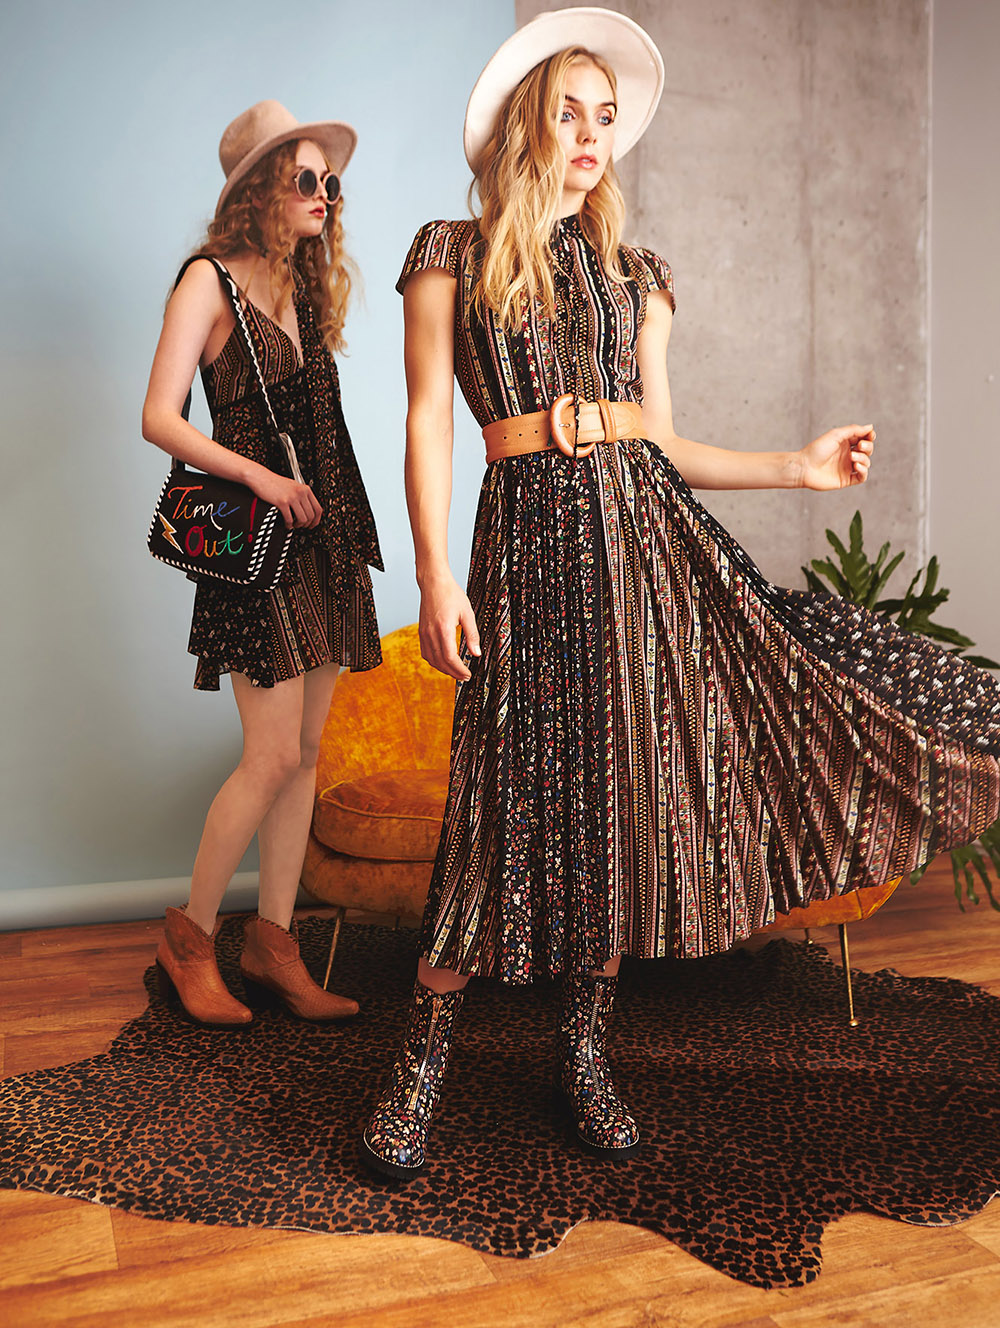 Beloved boho with marching to the beat of Sargent Pepper could aptly describe Alice & Olivia's lineup for pre-fall 2017